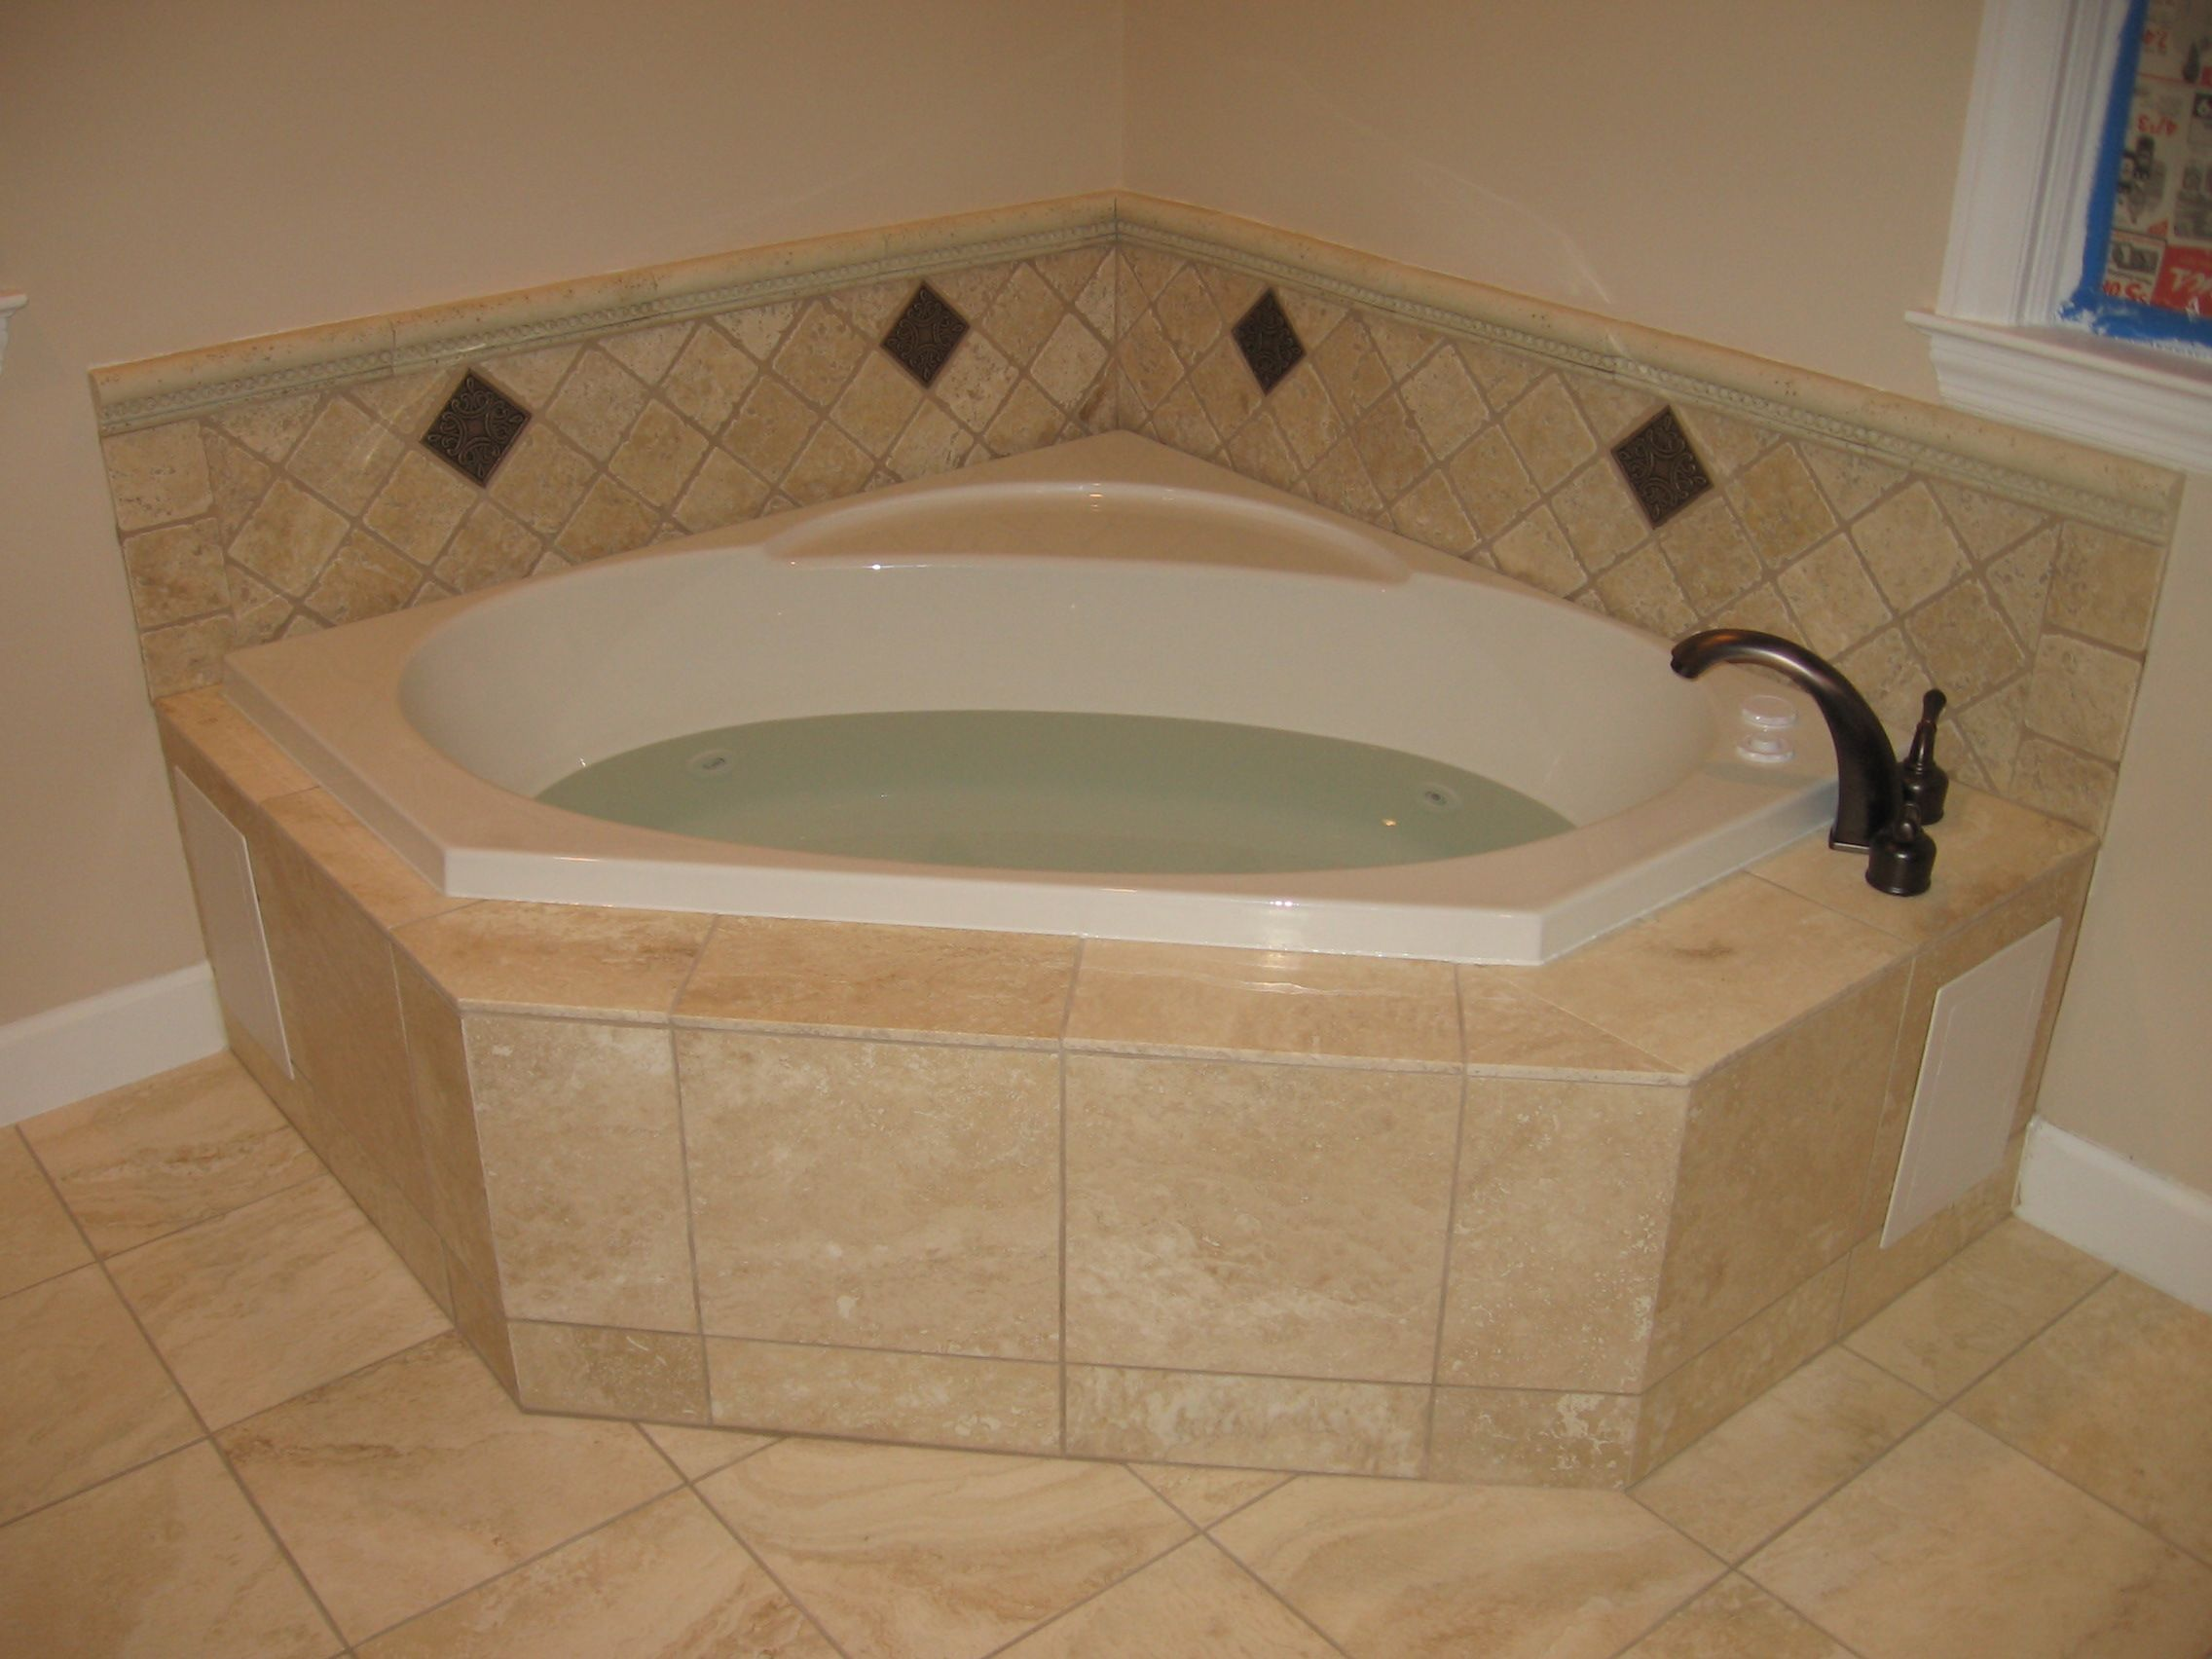 15 interesting whirlpool corner bathtub picture ideas for Jet tub bathroom designs